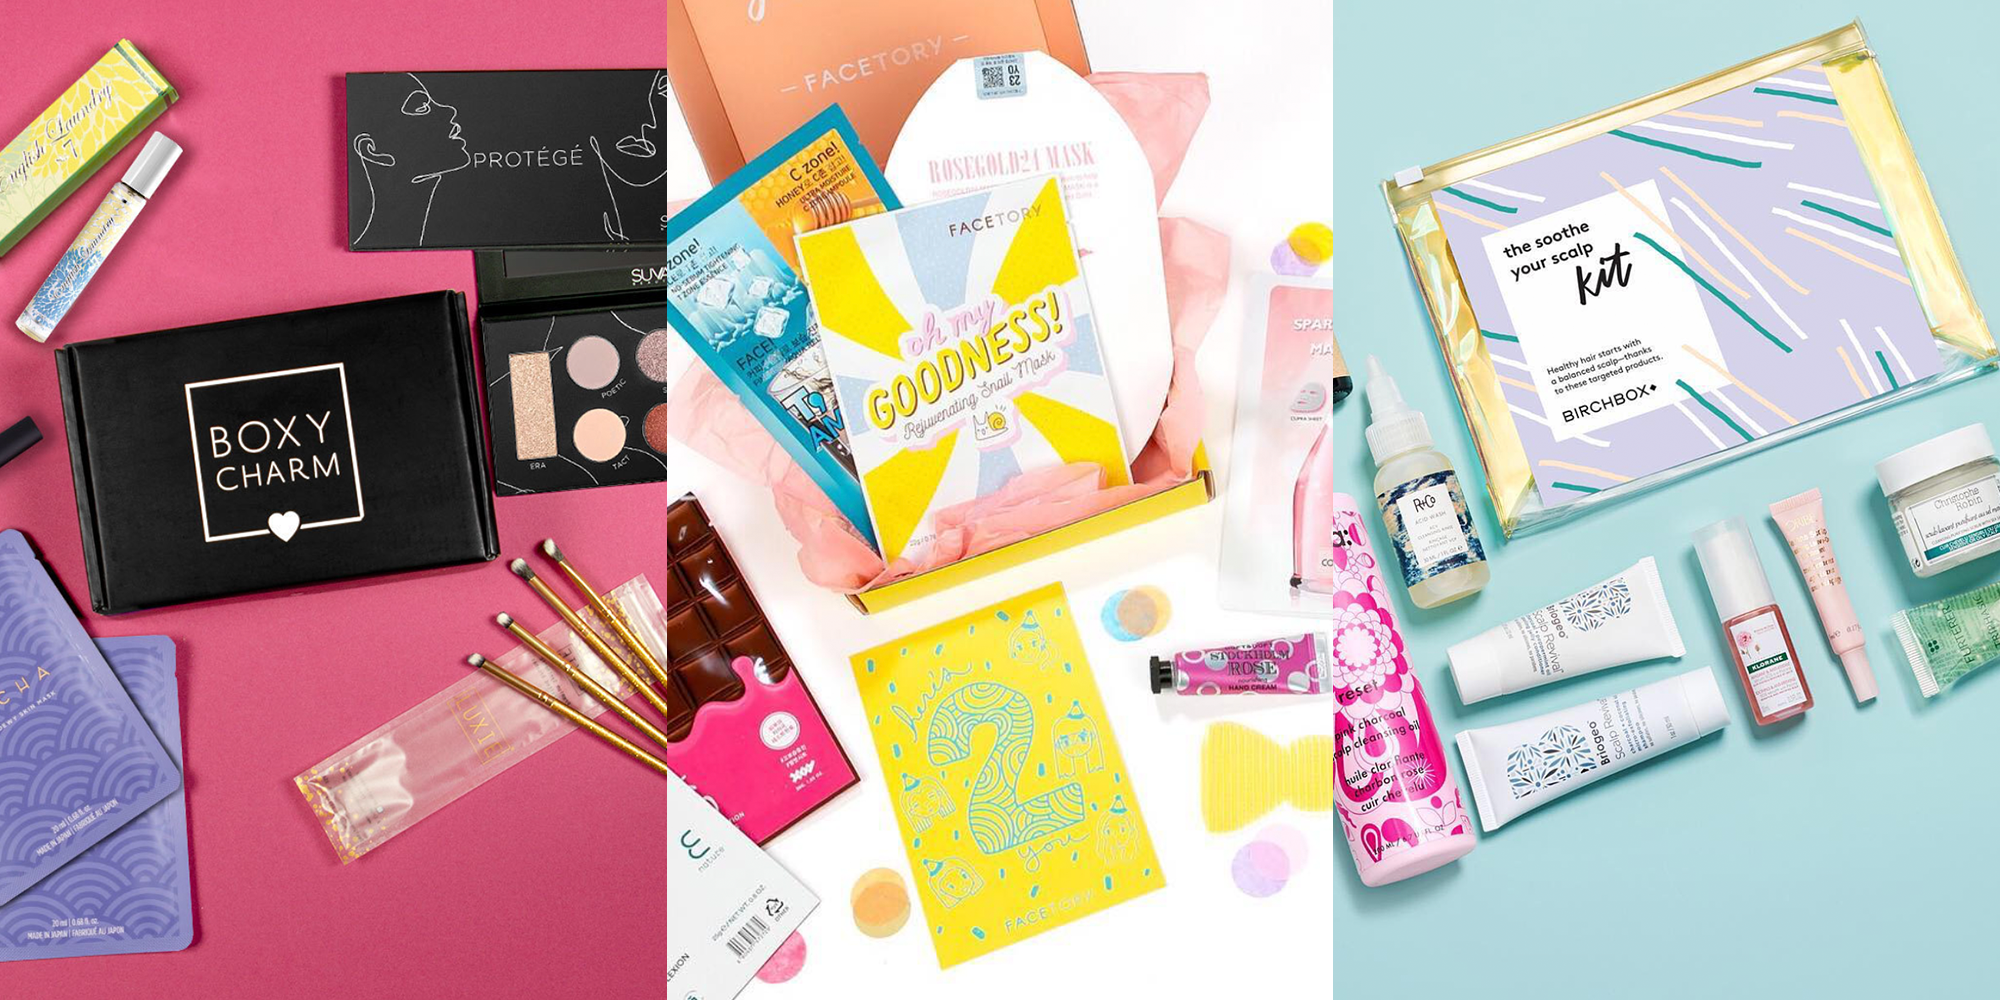 15 Best Makeup and Beauty Subscription Boxes of 2019